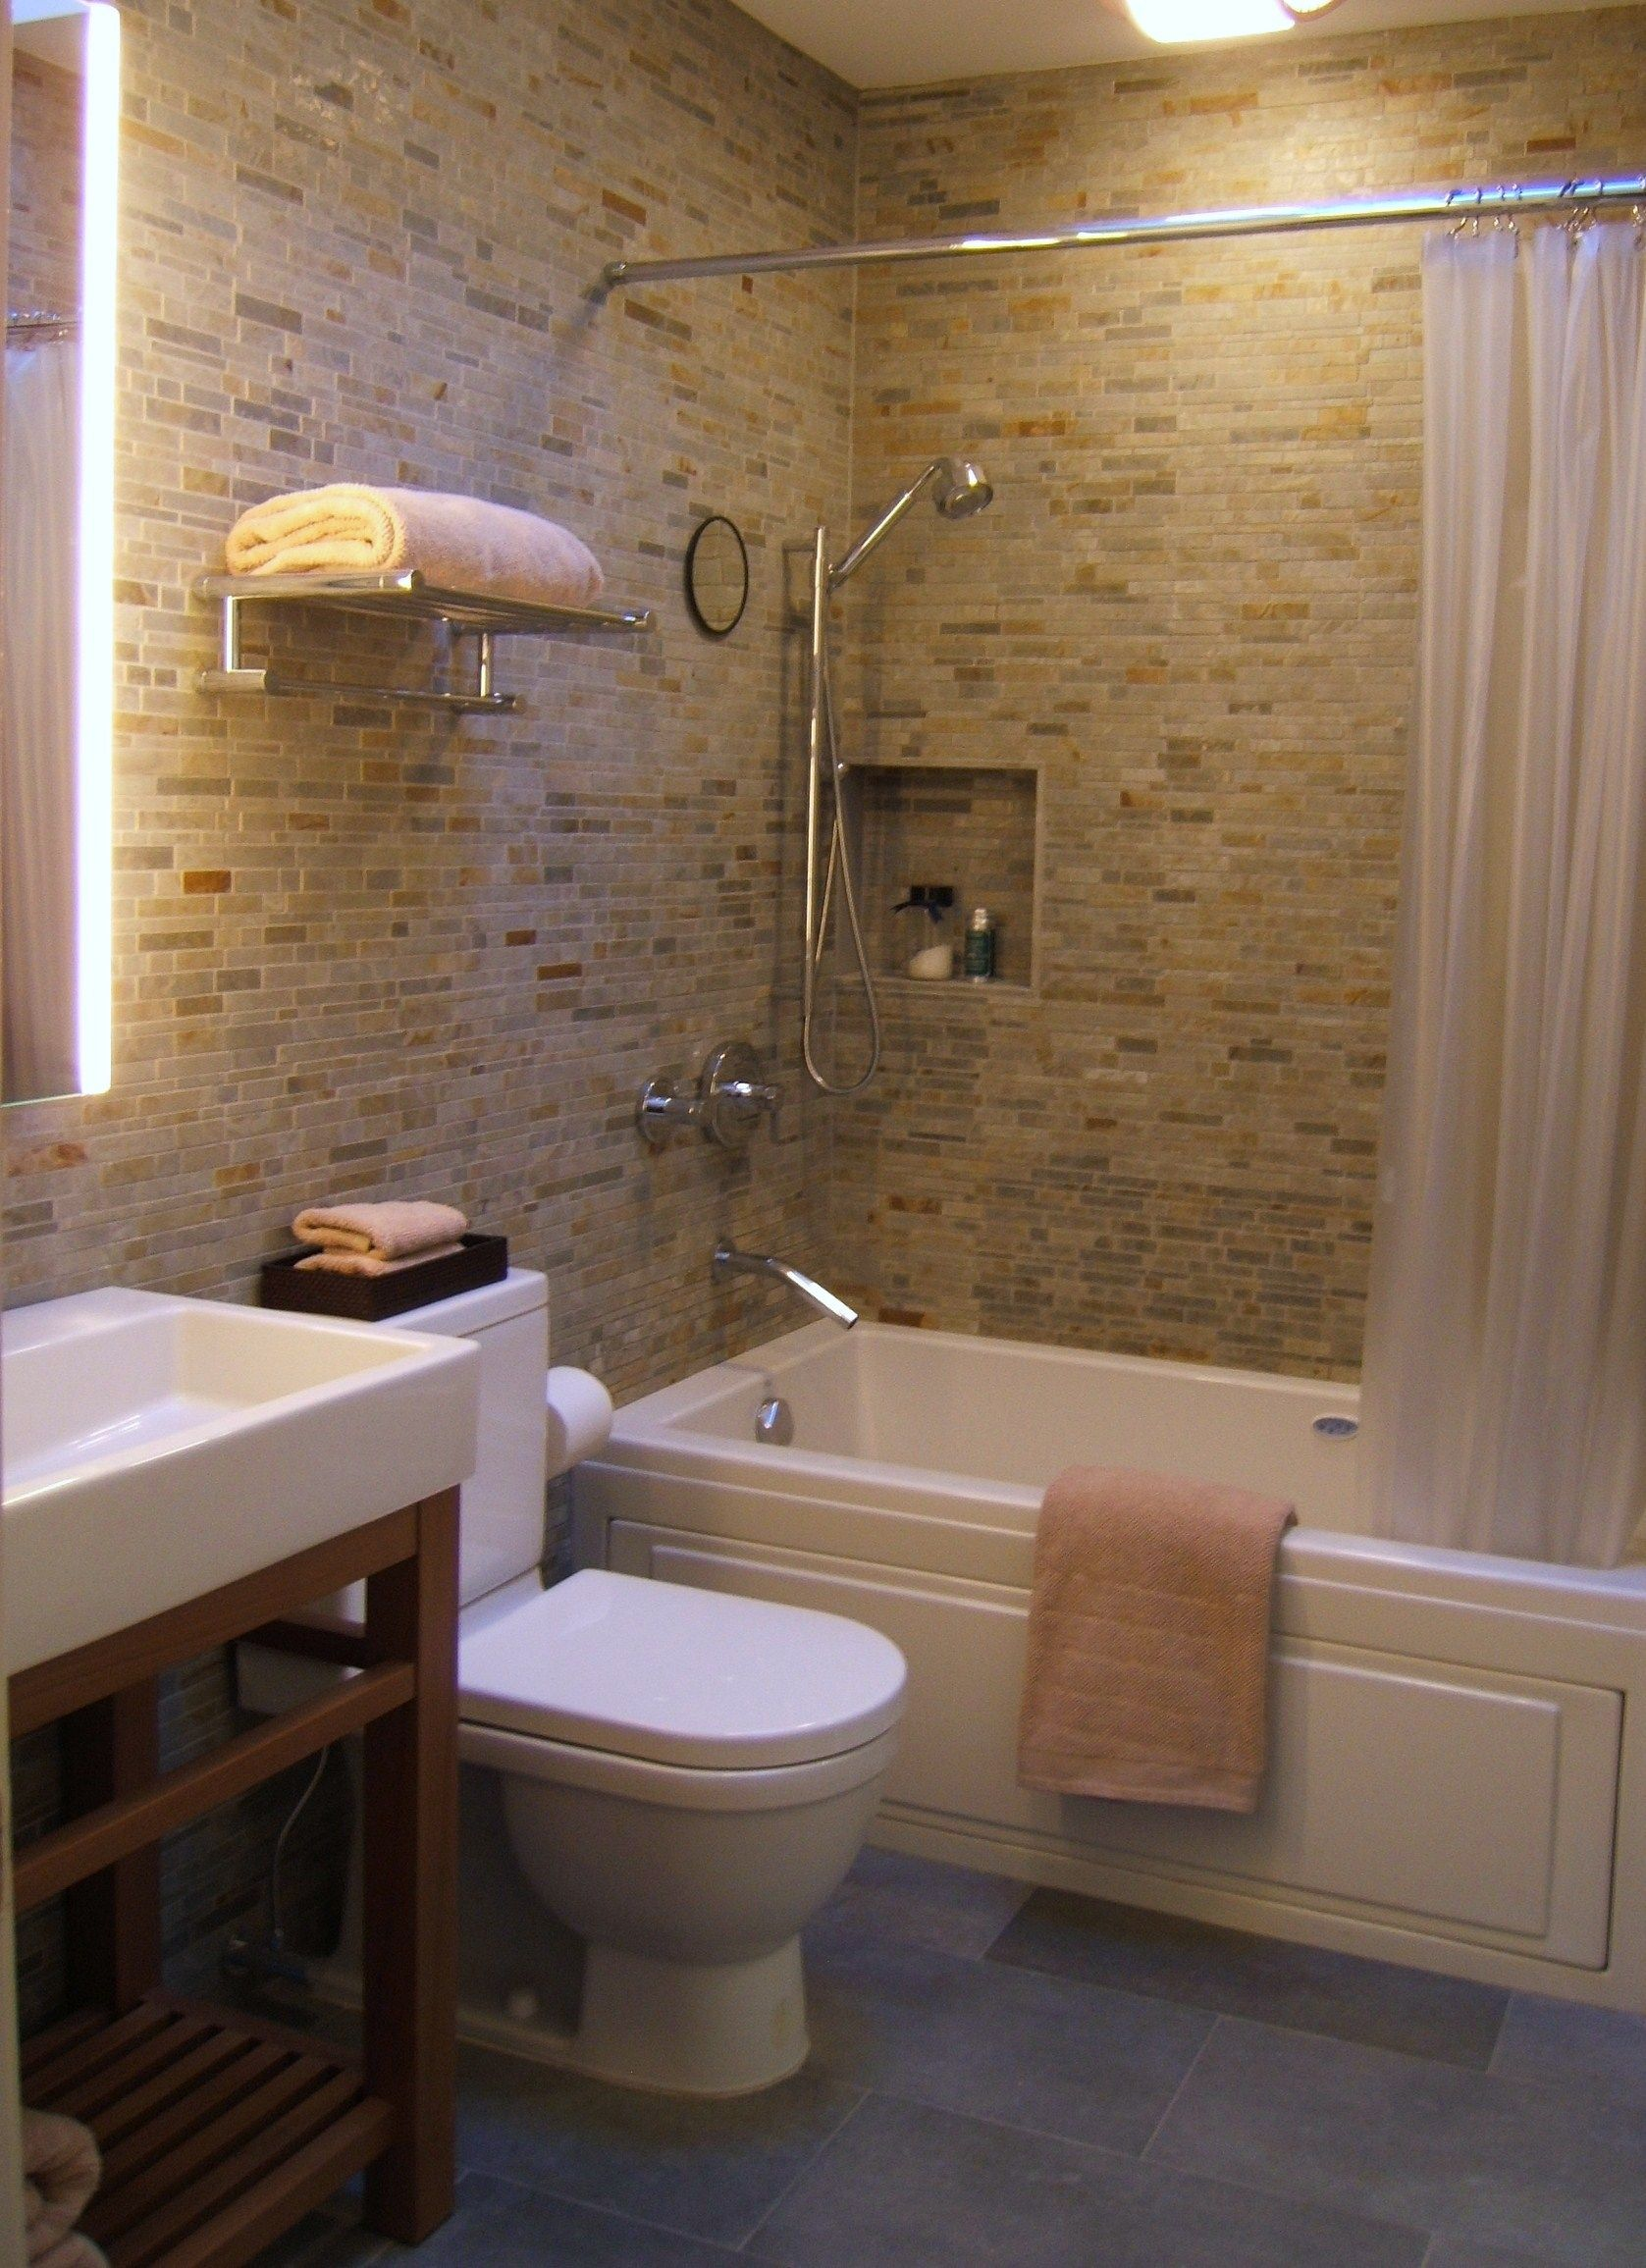 Small bathroom designs south africa small bath for Small restroom ideas